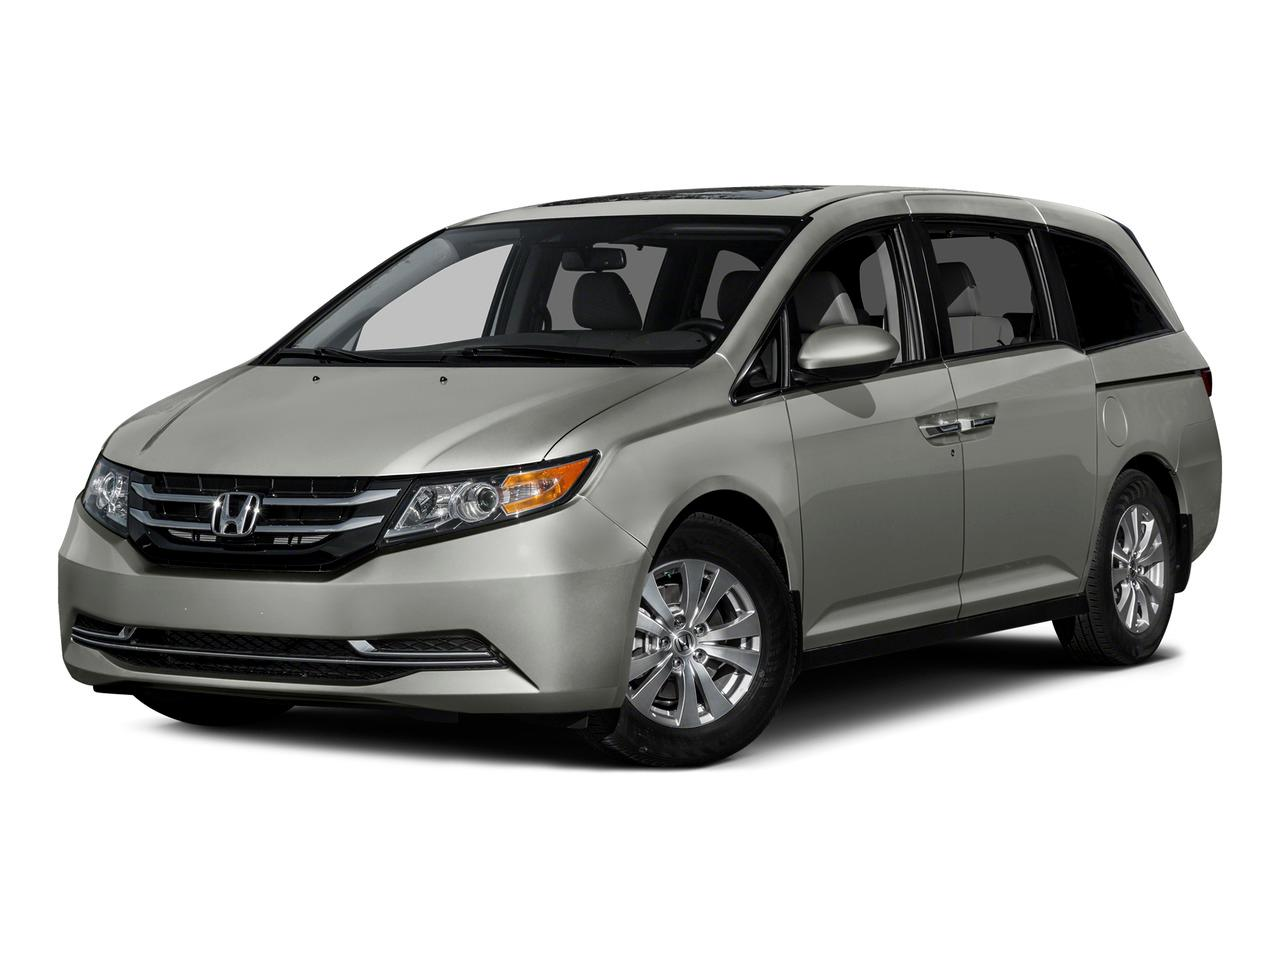 2015 Honda Odyssey Vehicle Photo in San Antonio, TX 78238